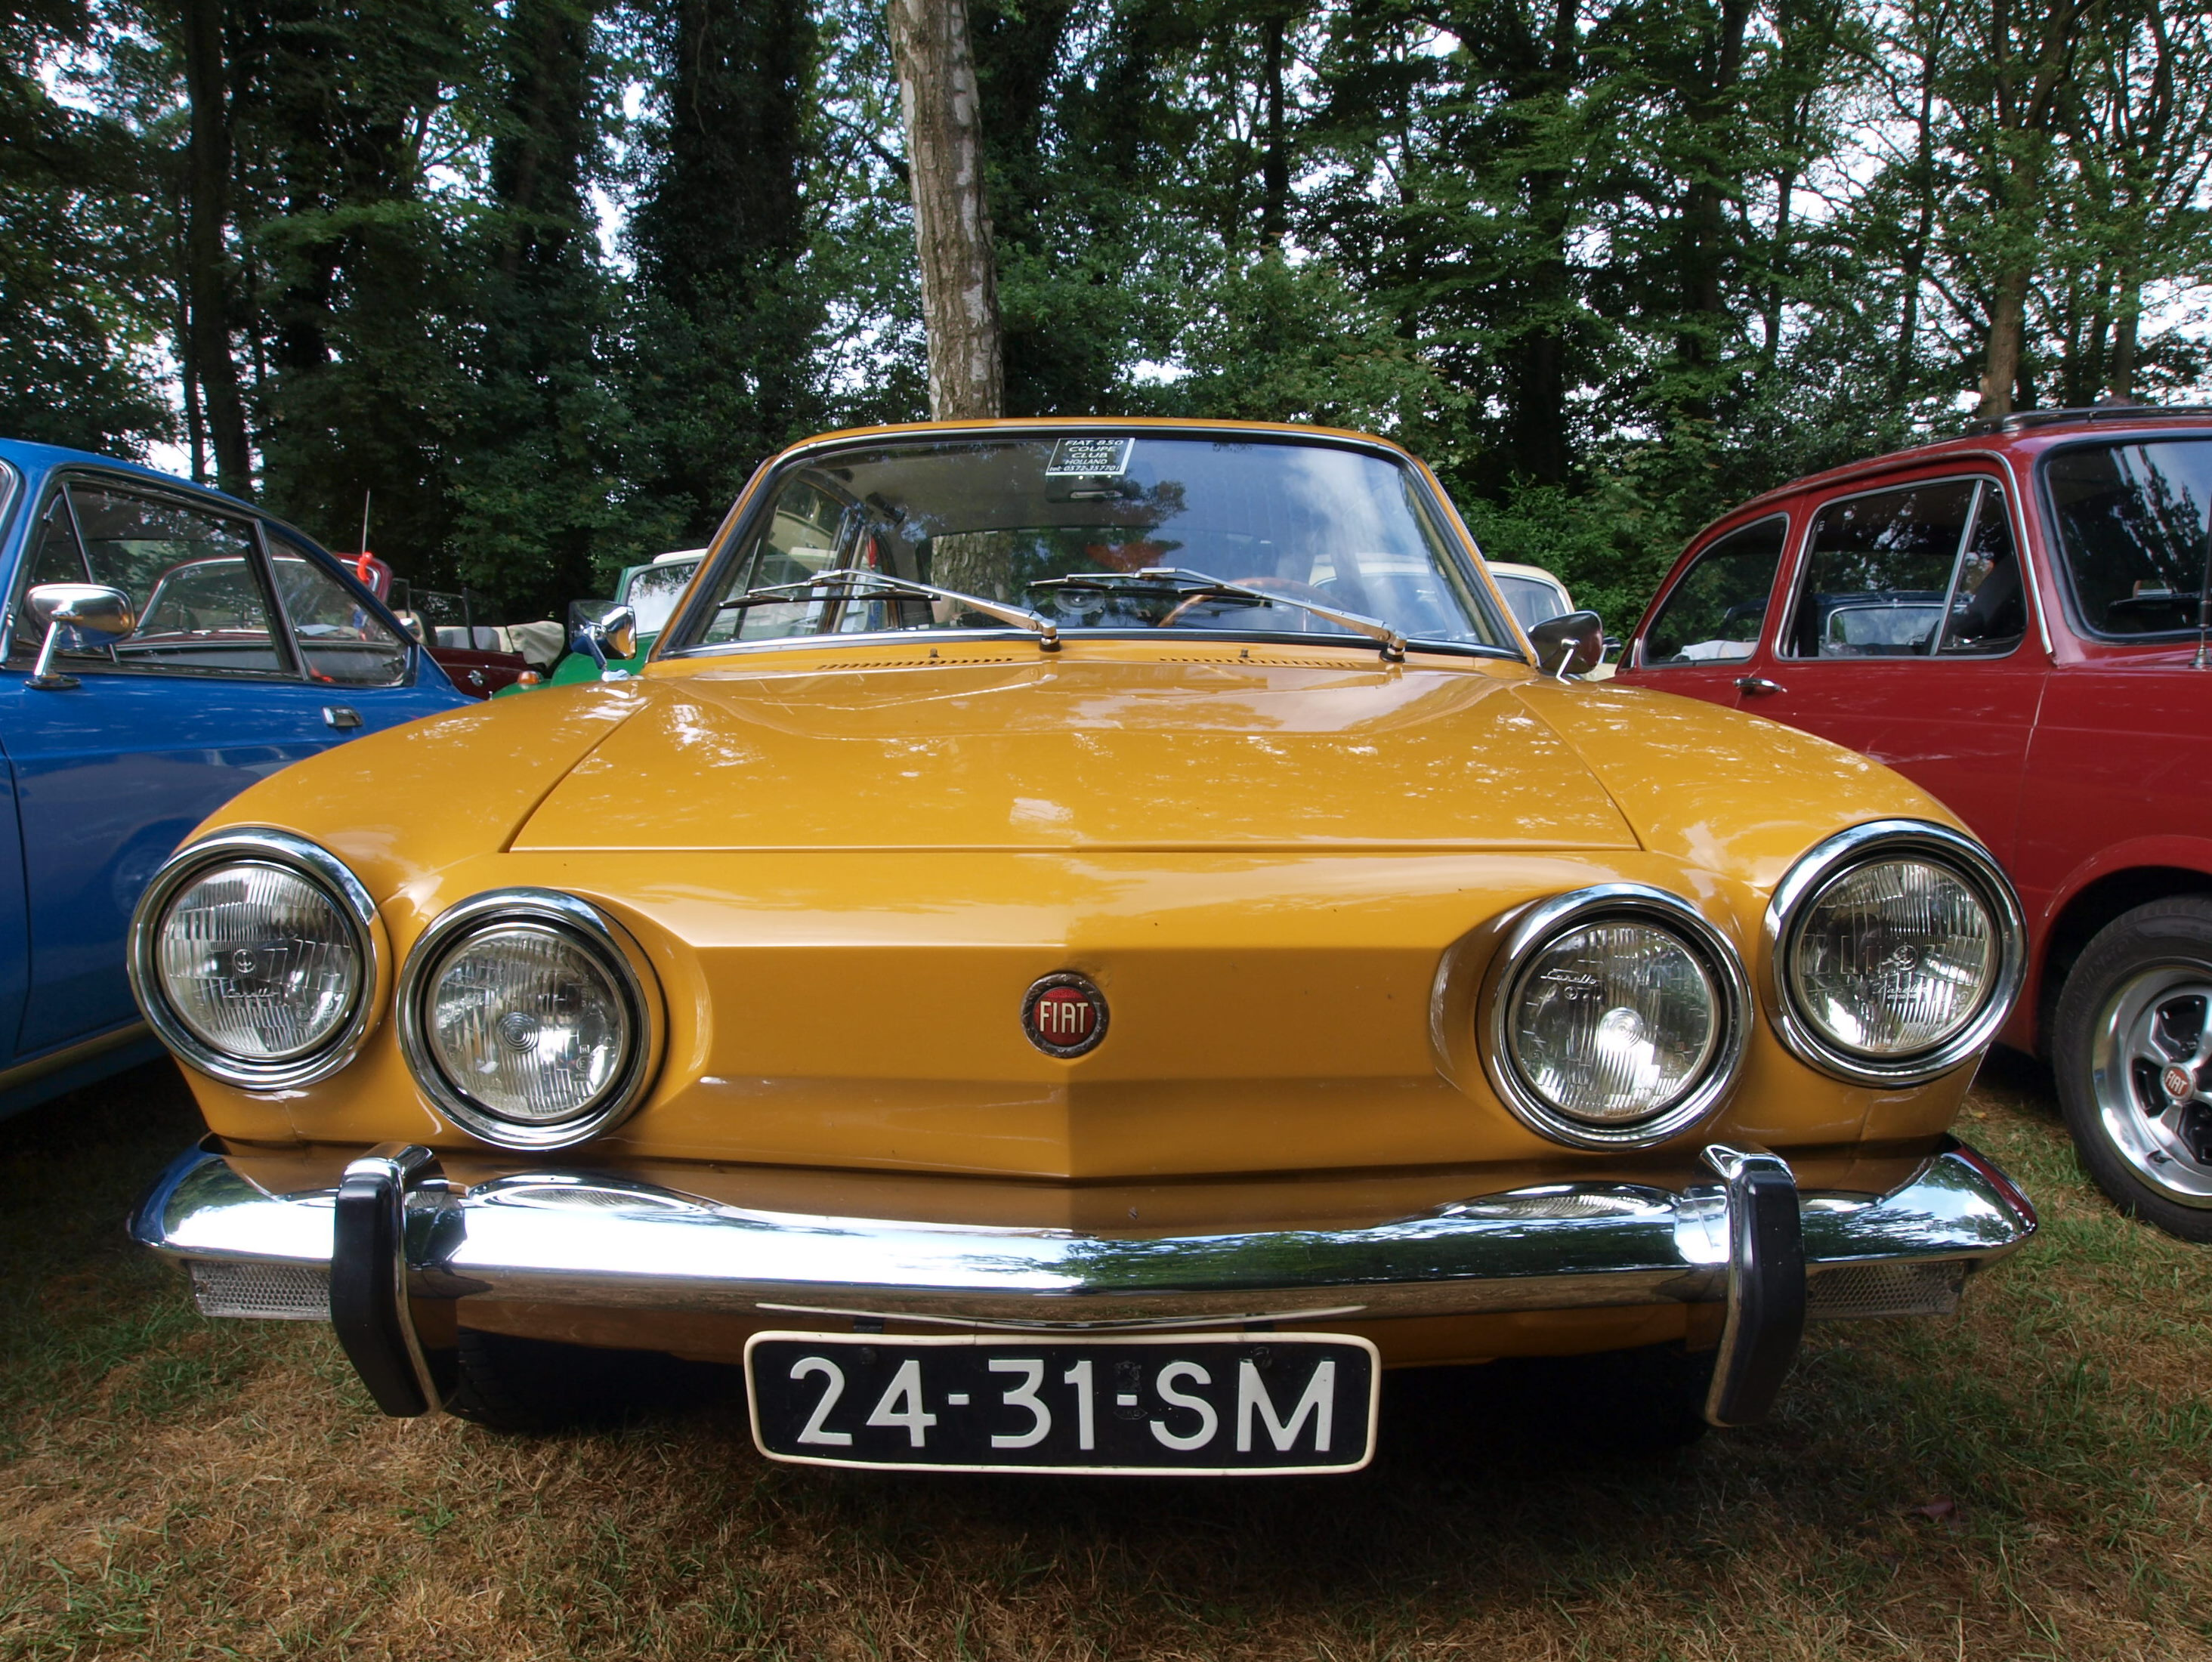 Fiat Spider For Sale >> File:1971 Fiat Sport 850 pic-003.JPG - Wikimedia Commons